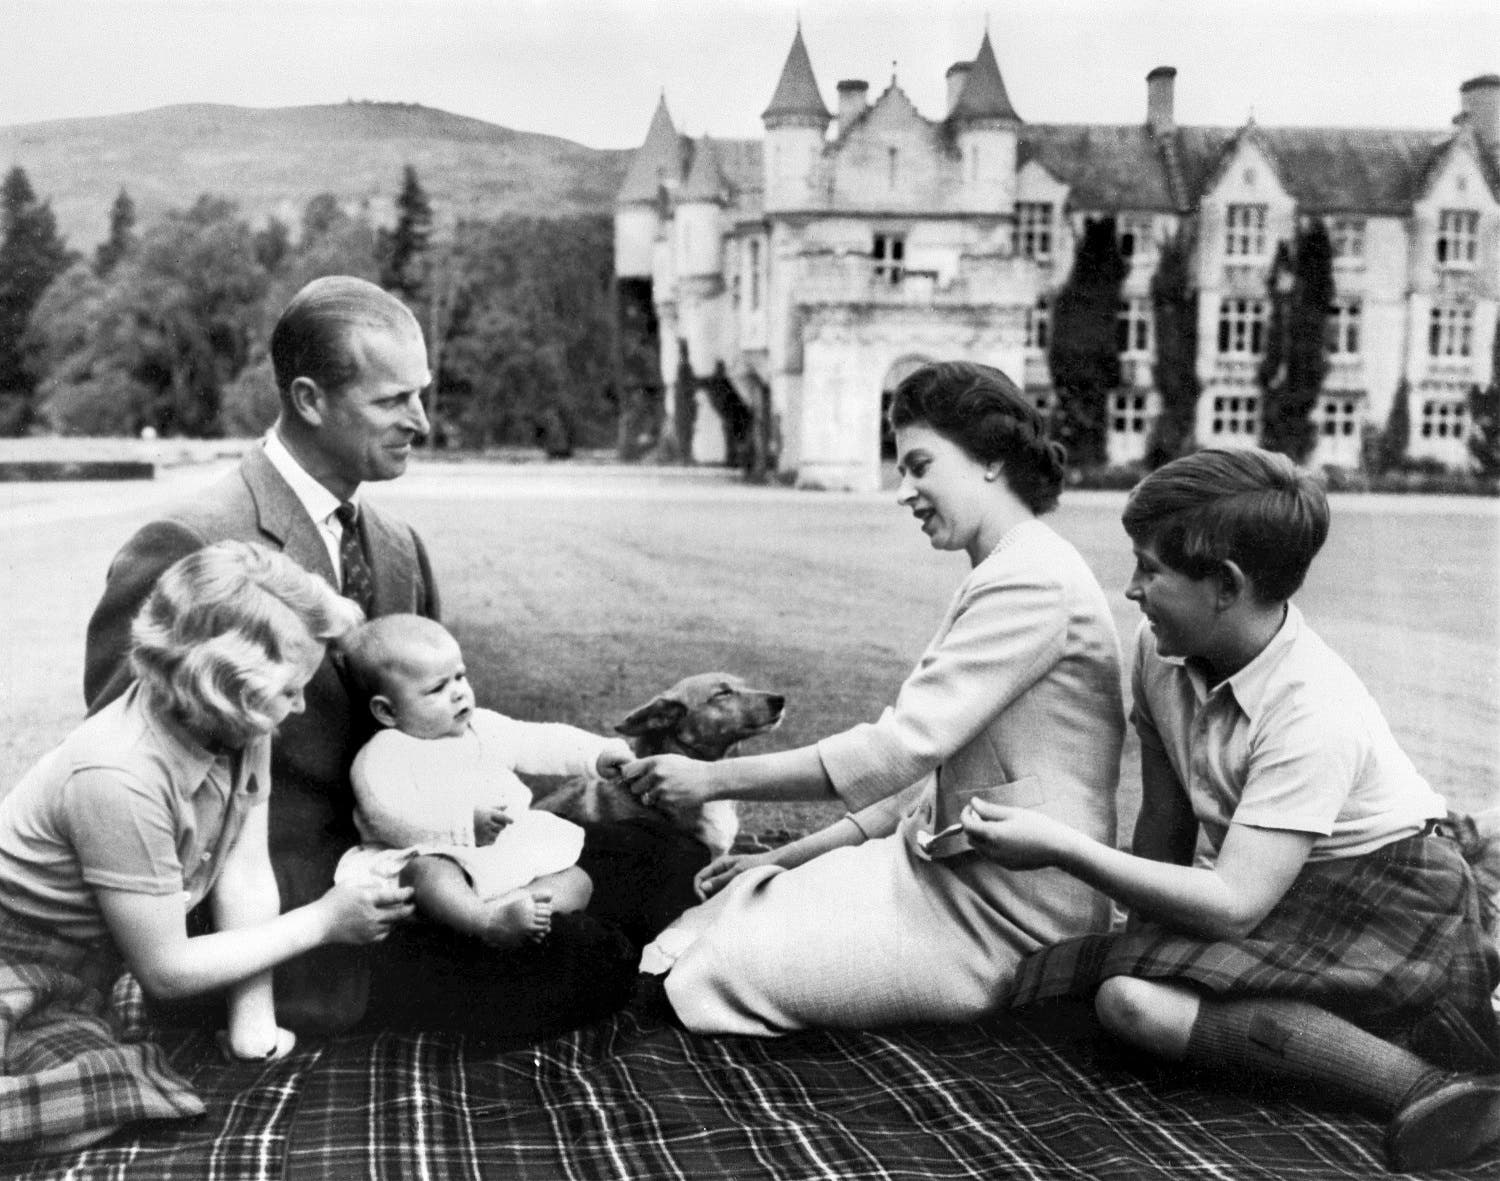 The Queen Elizabeth II, the Prince Philip and their three children pose, 09 September 1960 in Balmoral (Photo: AFP)